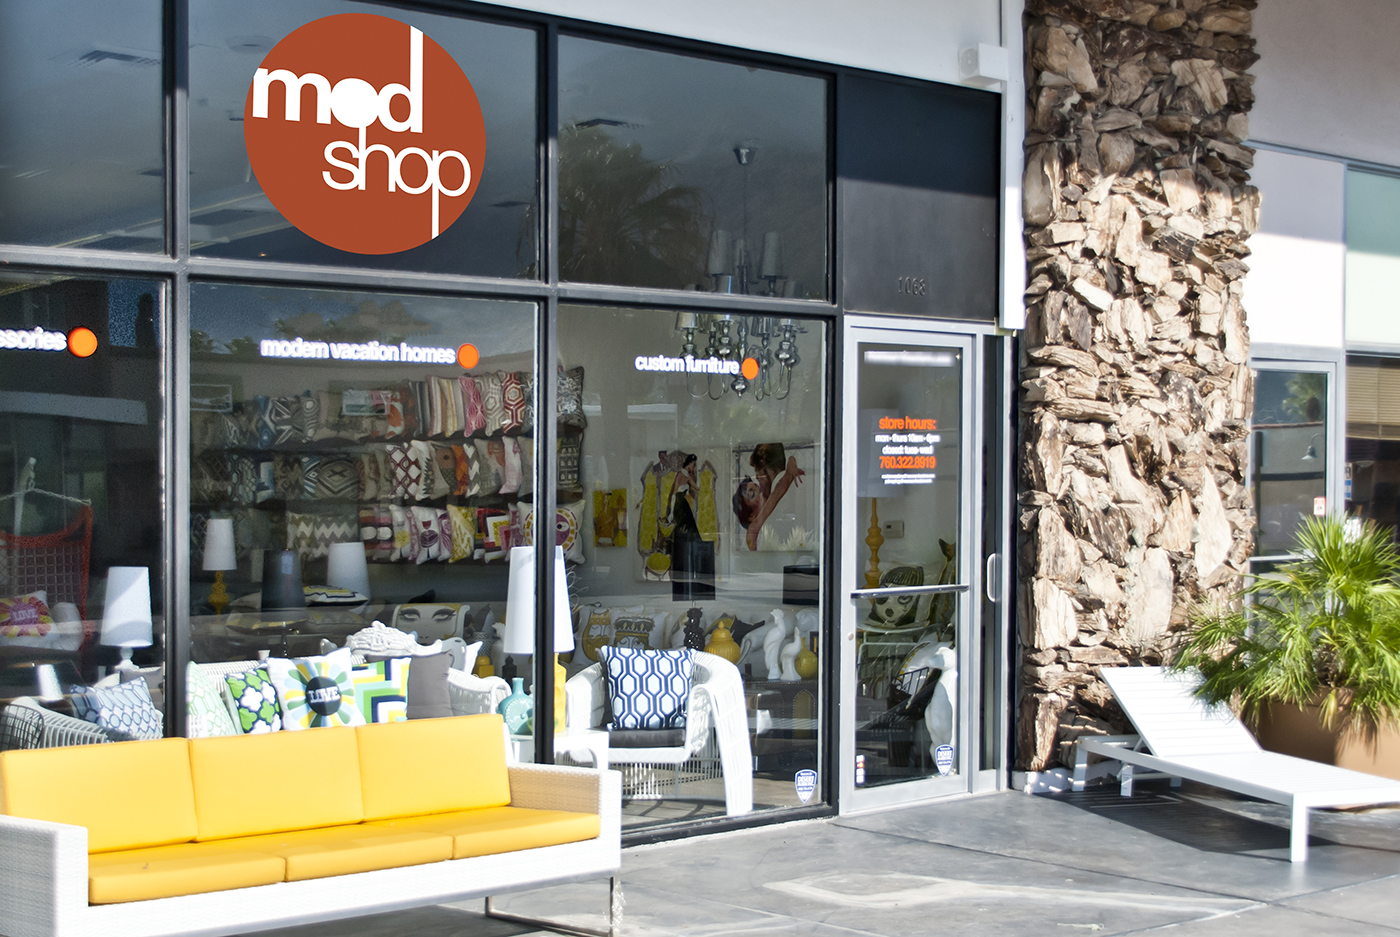 modern furniture store. Beautiful Store As You Can See Our Modern Designs Are Full Of Color And Fun Fabrics If  Visiting Palm Springs For A Mini Getaway Or Relocating To This Amazing Gem  To Modern Furniture Store R